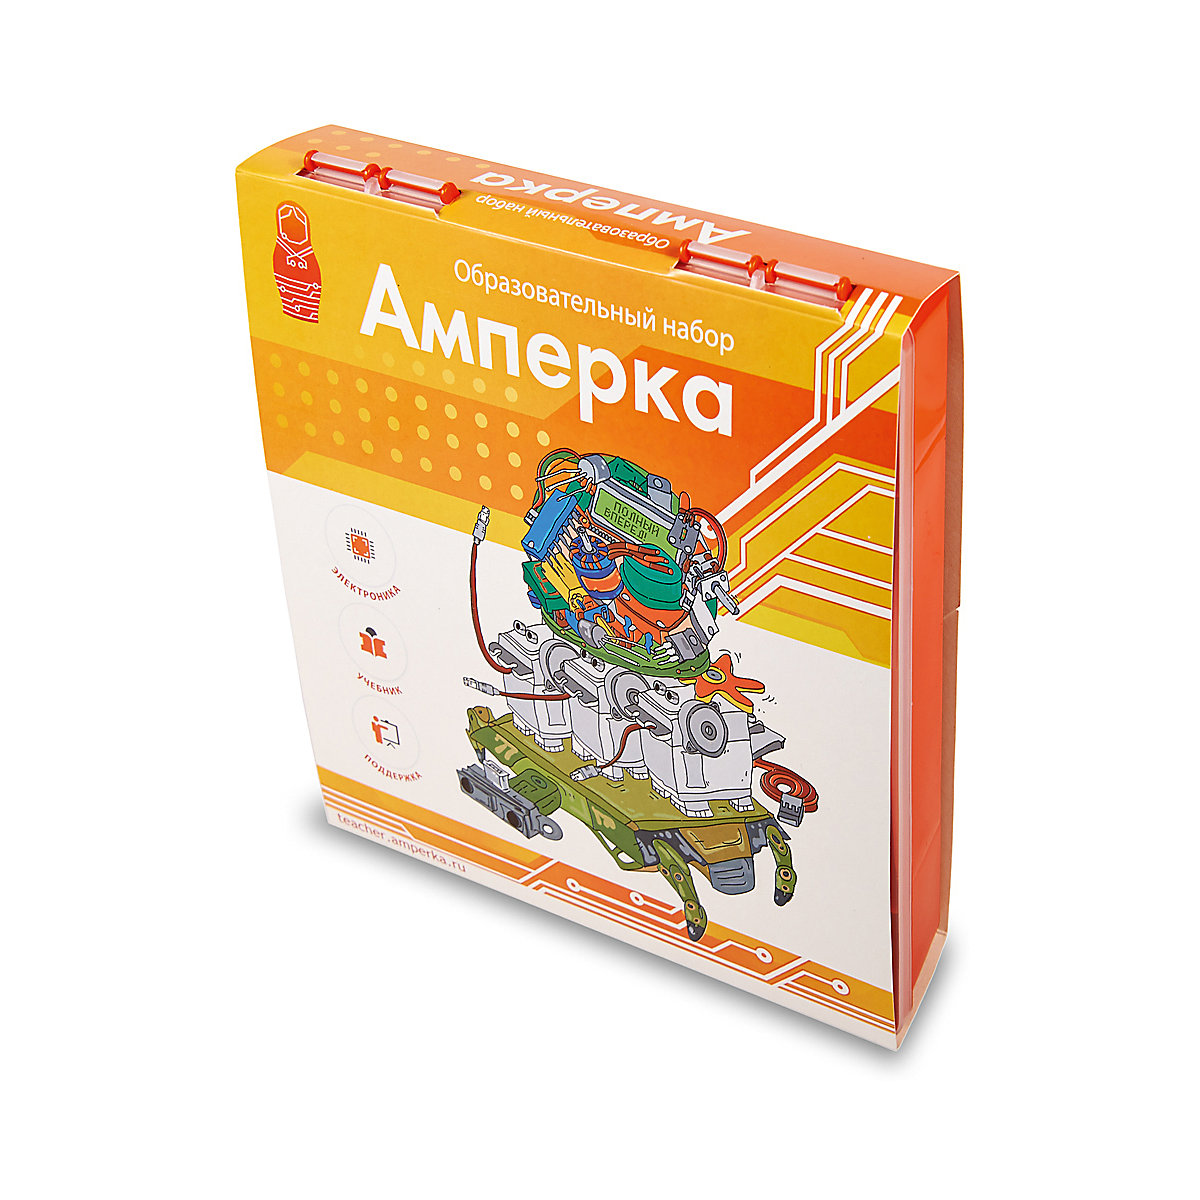 AMPERKA Blocks 5427690 toys for boys girls building construction educational developing toy game play team modeling boy girl large size 90pcs fire station fire engine model building blocks bricks fireman figure kids educational toys compatible duplo